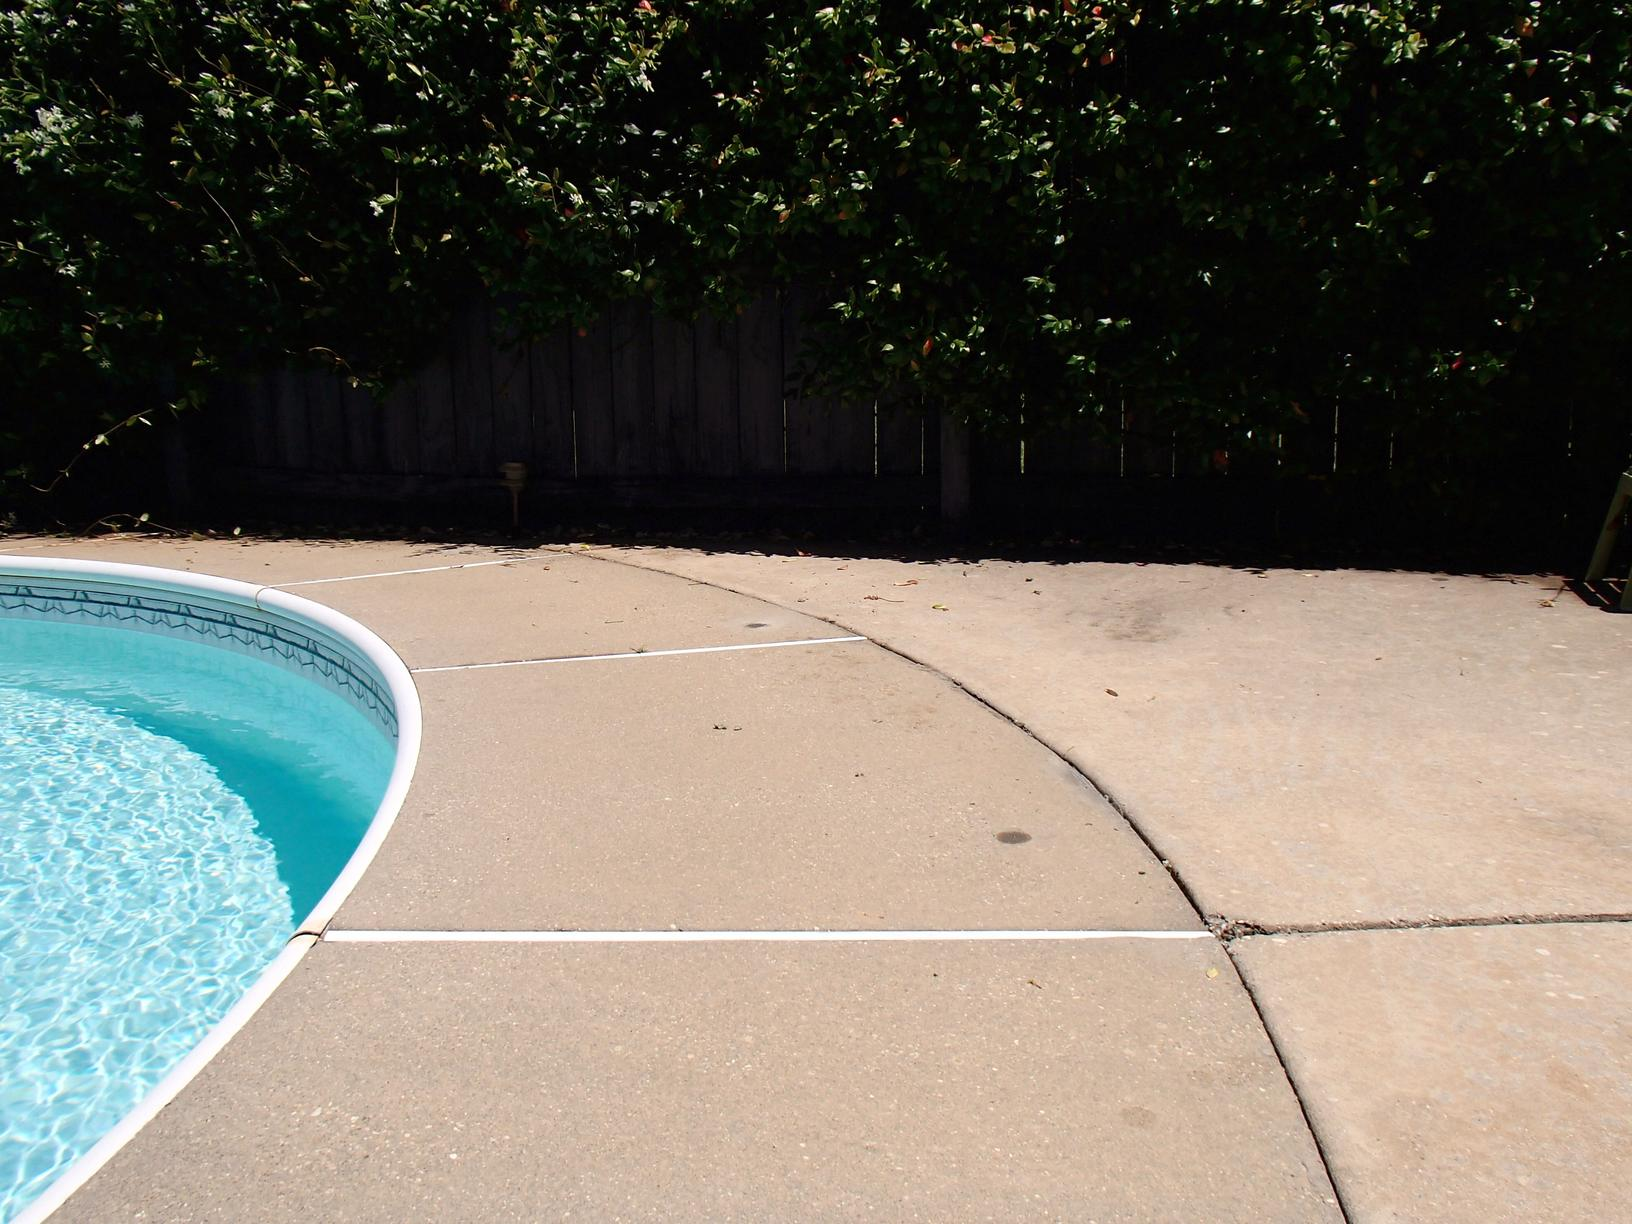 Pool - After Photo